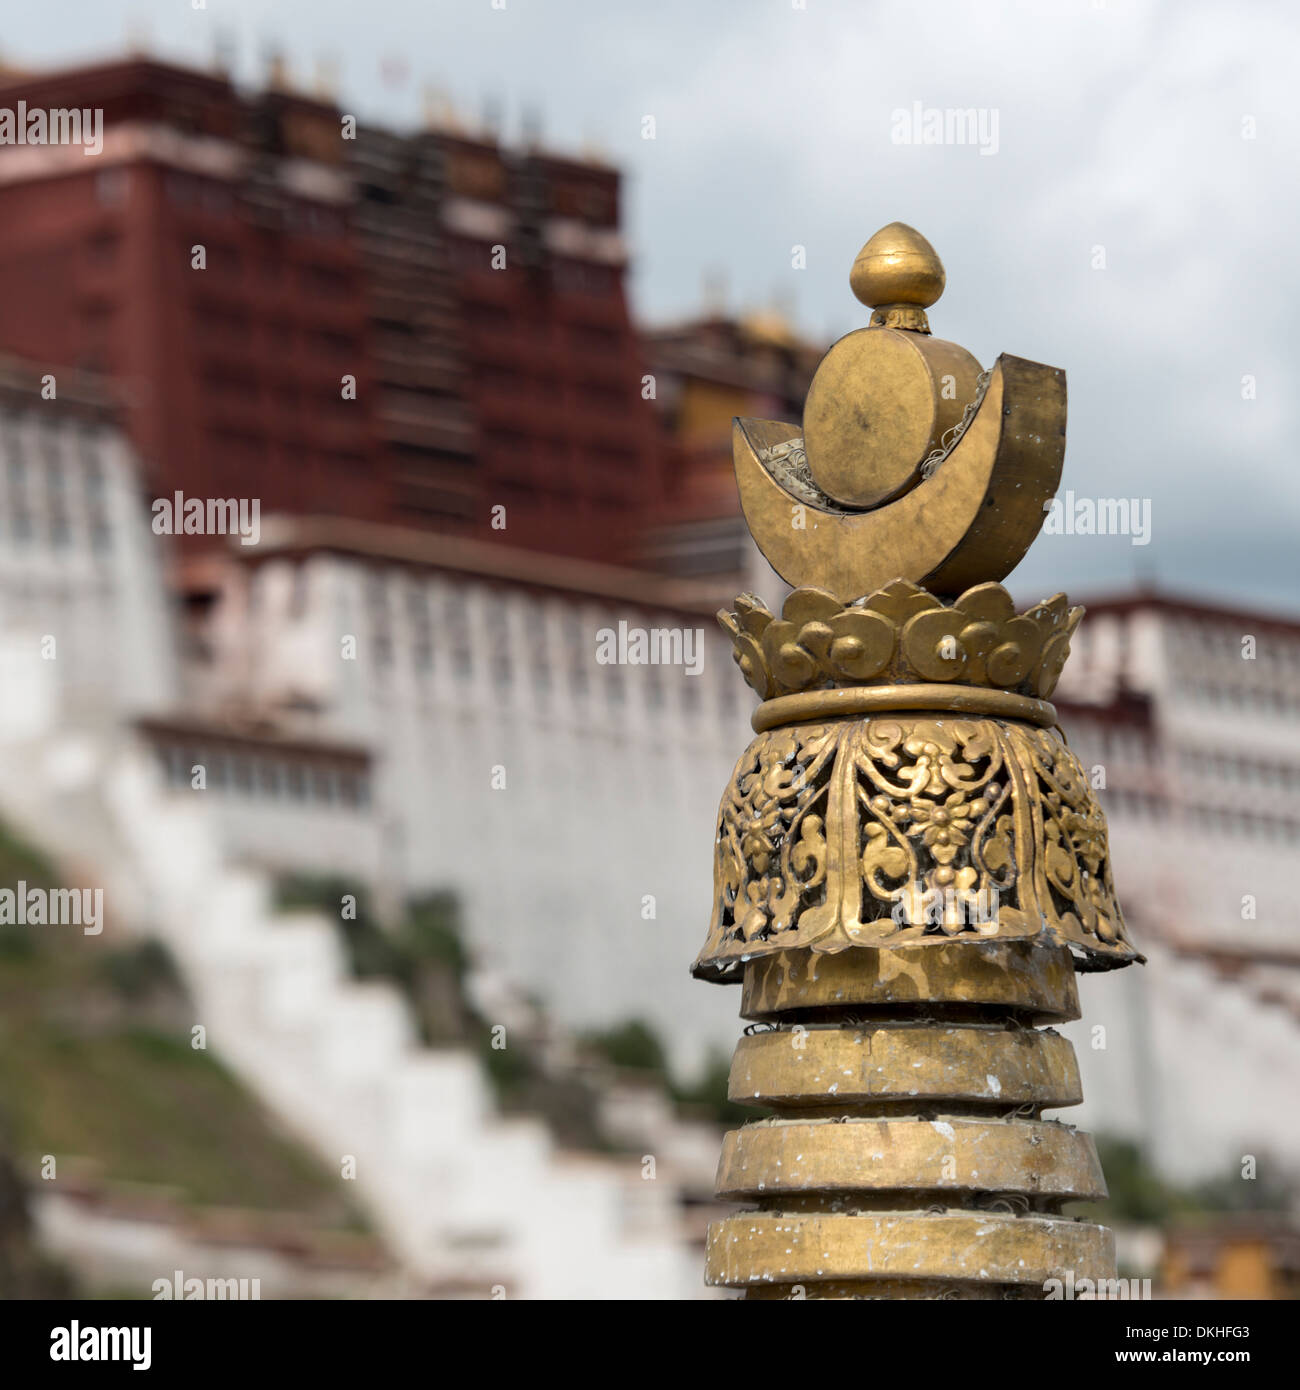 High section view of stupa with Potala Palace in the background, Lhasa, Tibet, China - Stock Image